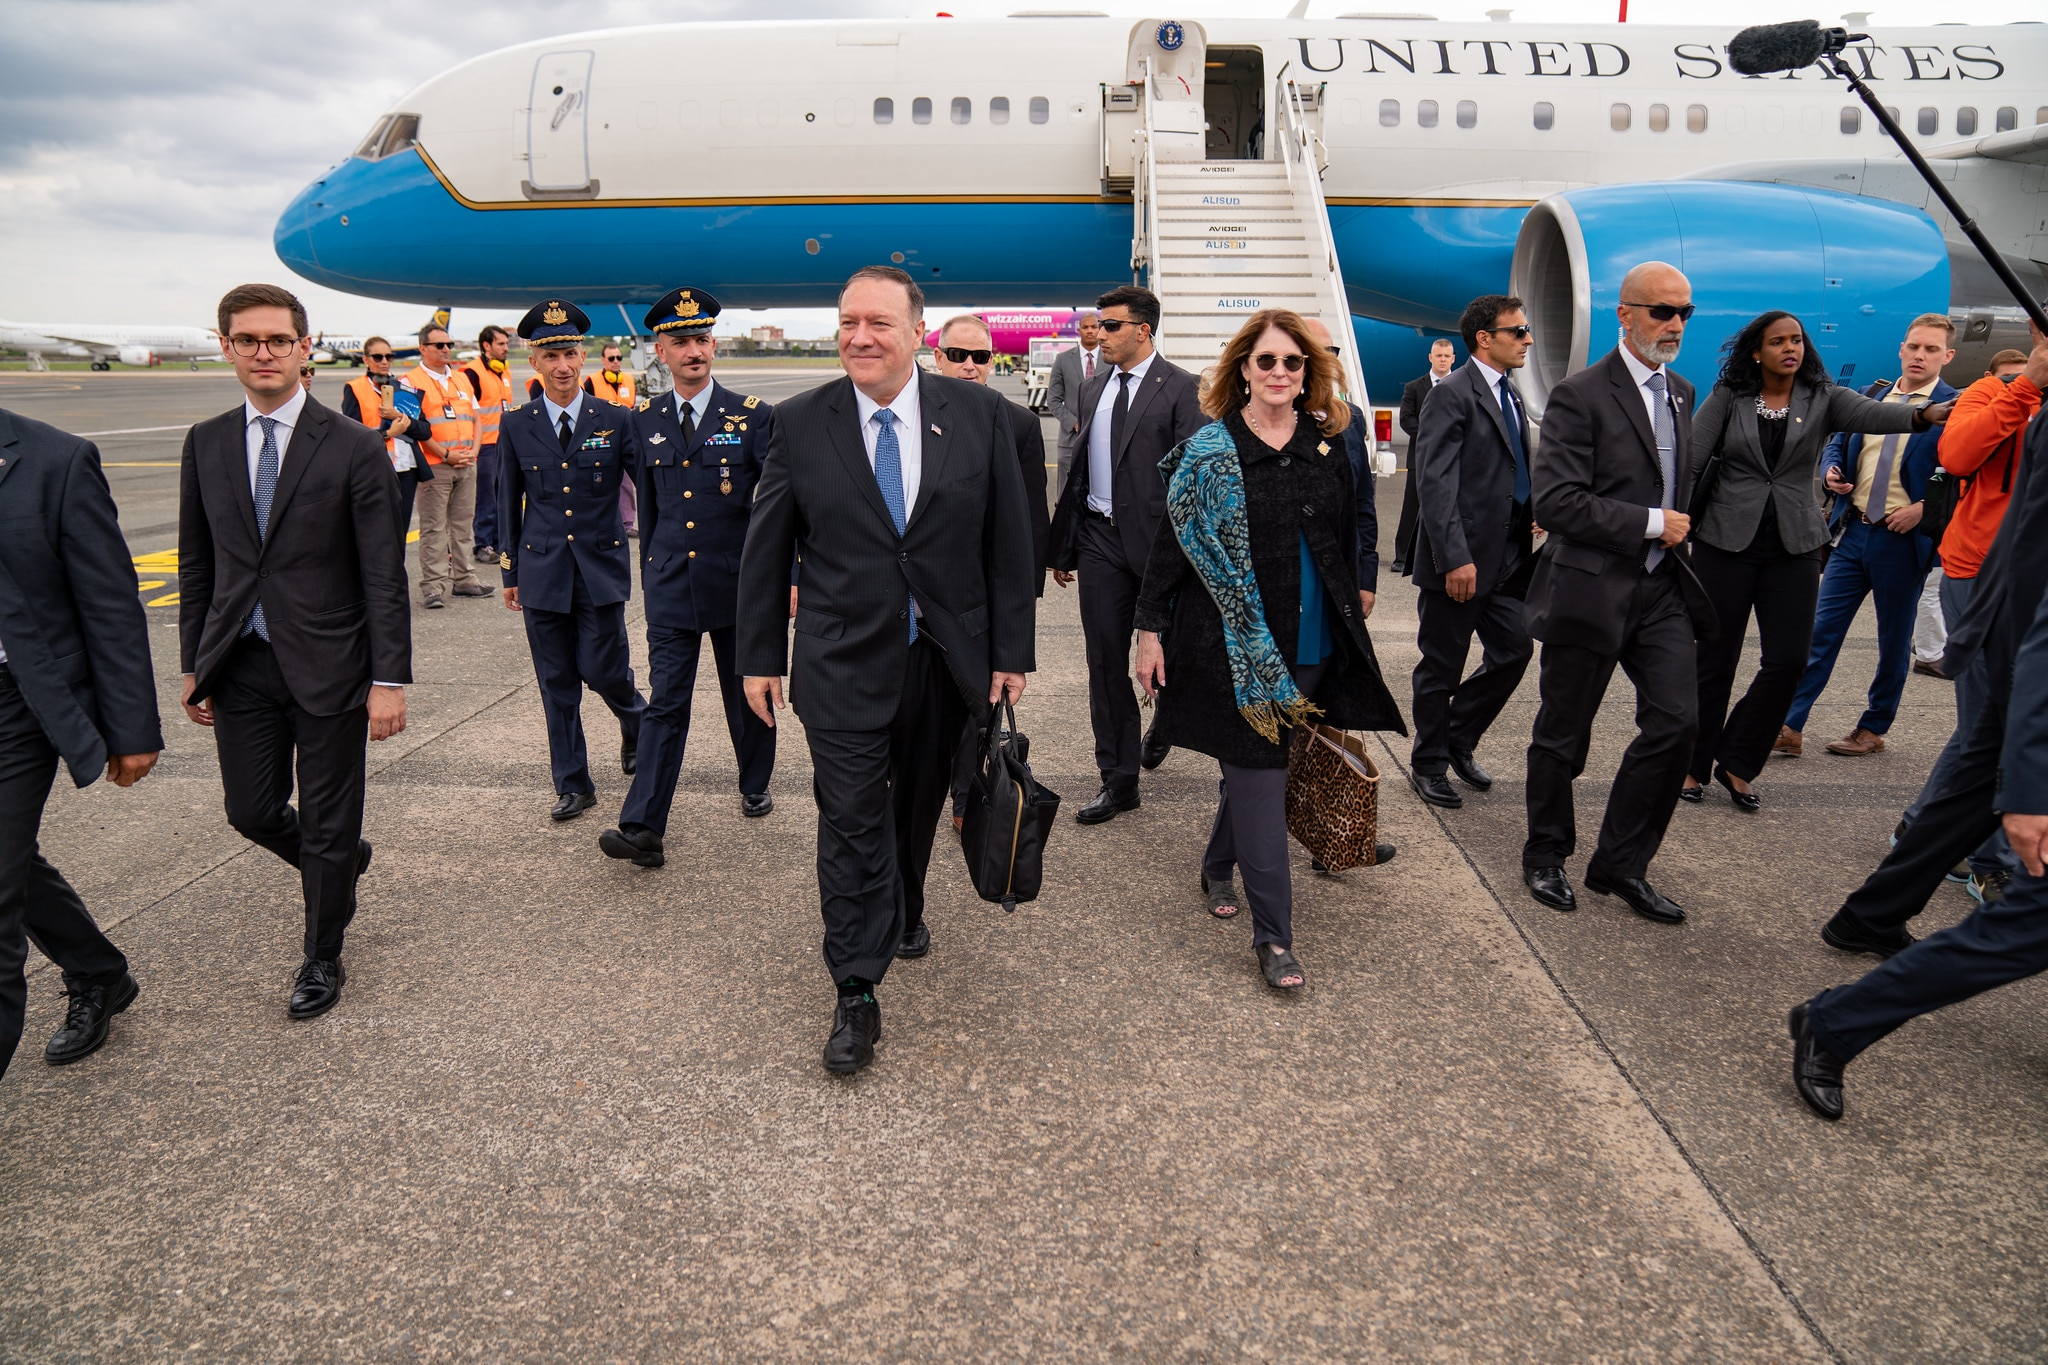 Secretary Pompeo Arrives in Rome: U.S. Secretary of State Michael R. Pompeo and Mrs. Susan Pompeo arrive in Rome, Italy, on October 1, 2019. [State Department photo by Ron Przysucha/ Public Domain]